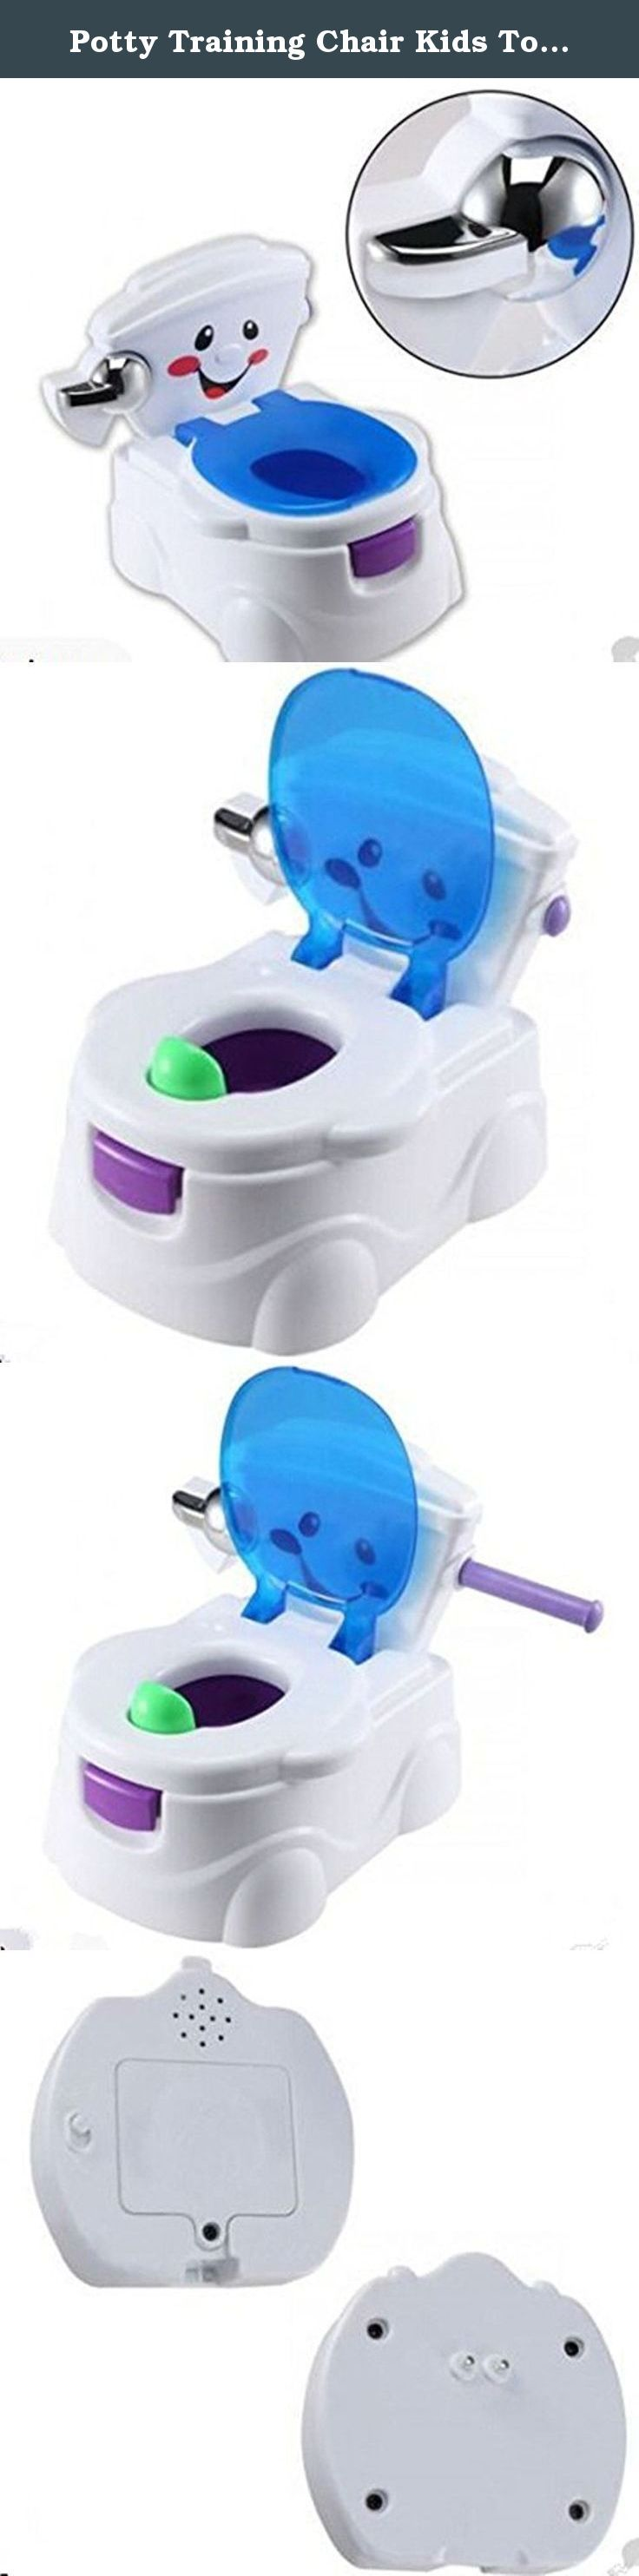 Potty Training Chair Kids Toilet Training 2 in 1 Baby Toddler Potty Seat Trainer Chair. Potty training chair Kids Toilet Training 2 in 1 Baby Toddler Potty Seat Trainer Chair #ส้วมสำหรับเด็ก 36.